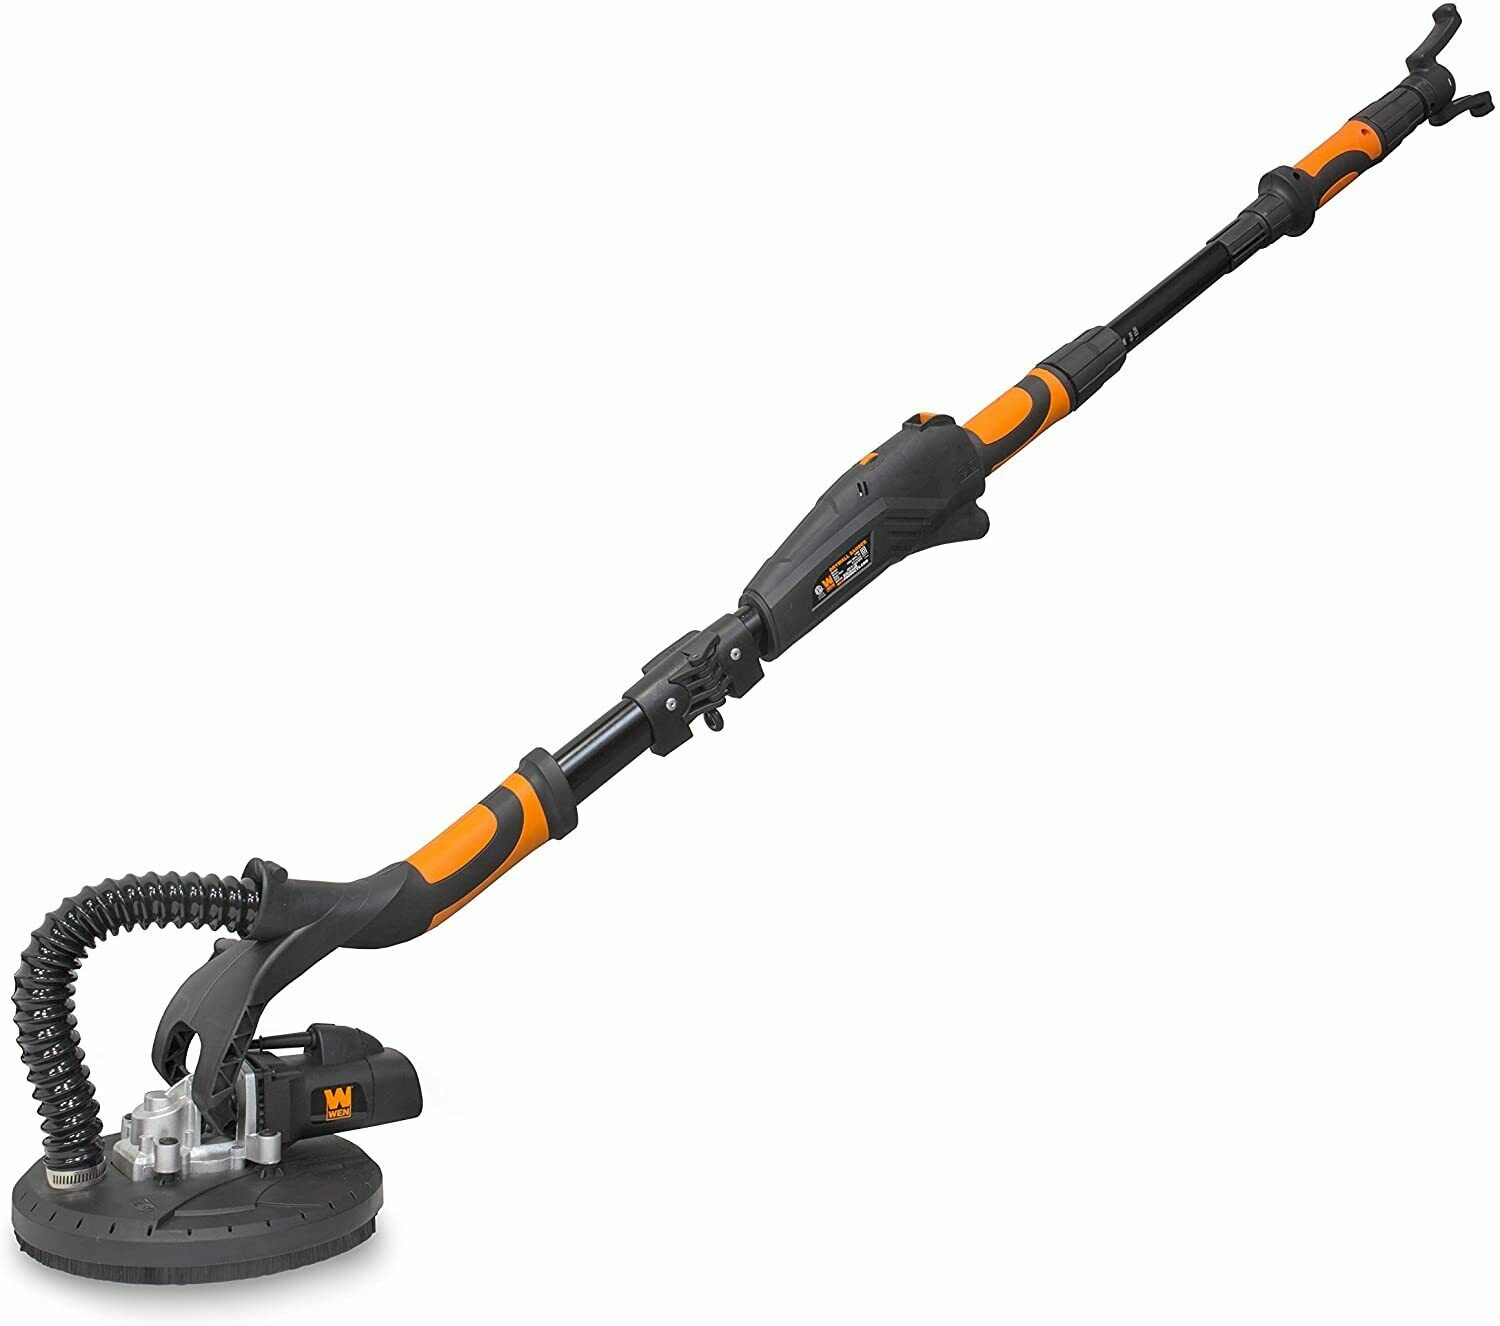 6369 prsecom WEN 6369 Variable Speed 5 Amp Drywall Sander with 15' Hose free shipping..